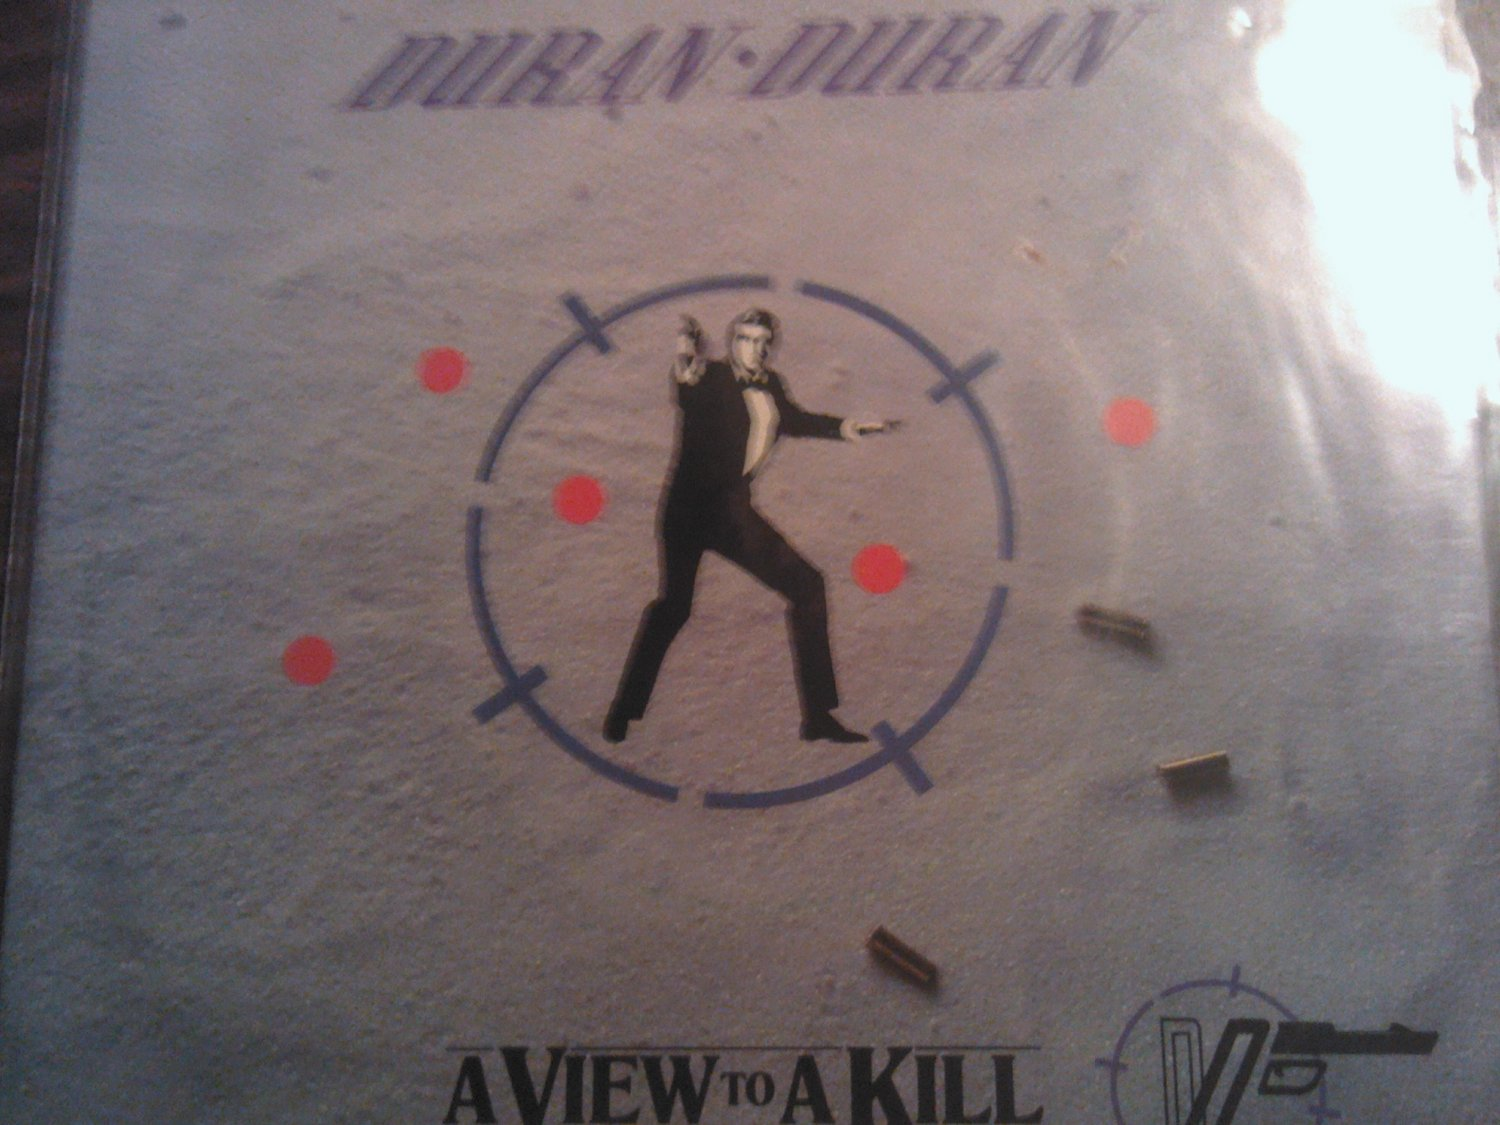 45 DURAN DURAN View To A Kill john barry james bond 007 vinyl record W/PICTURE SLEEVE